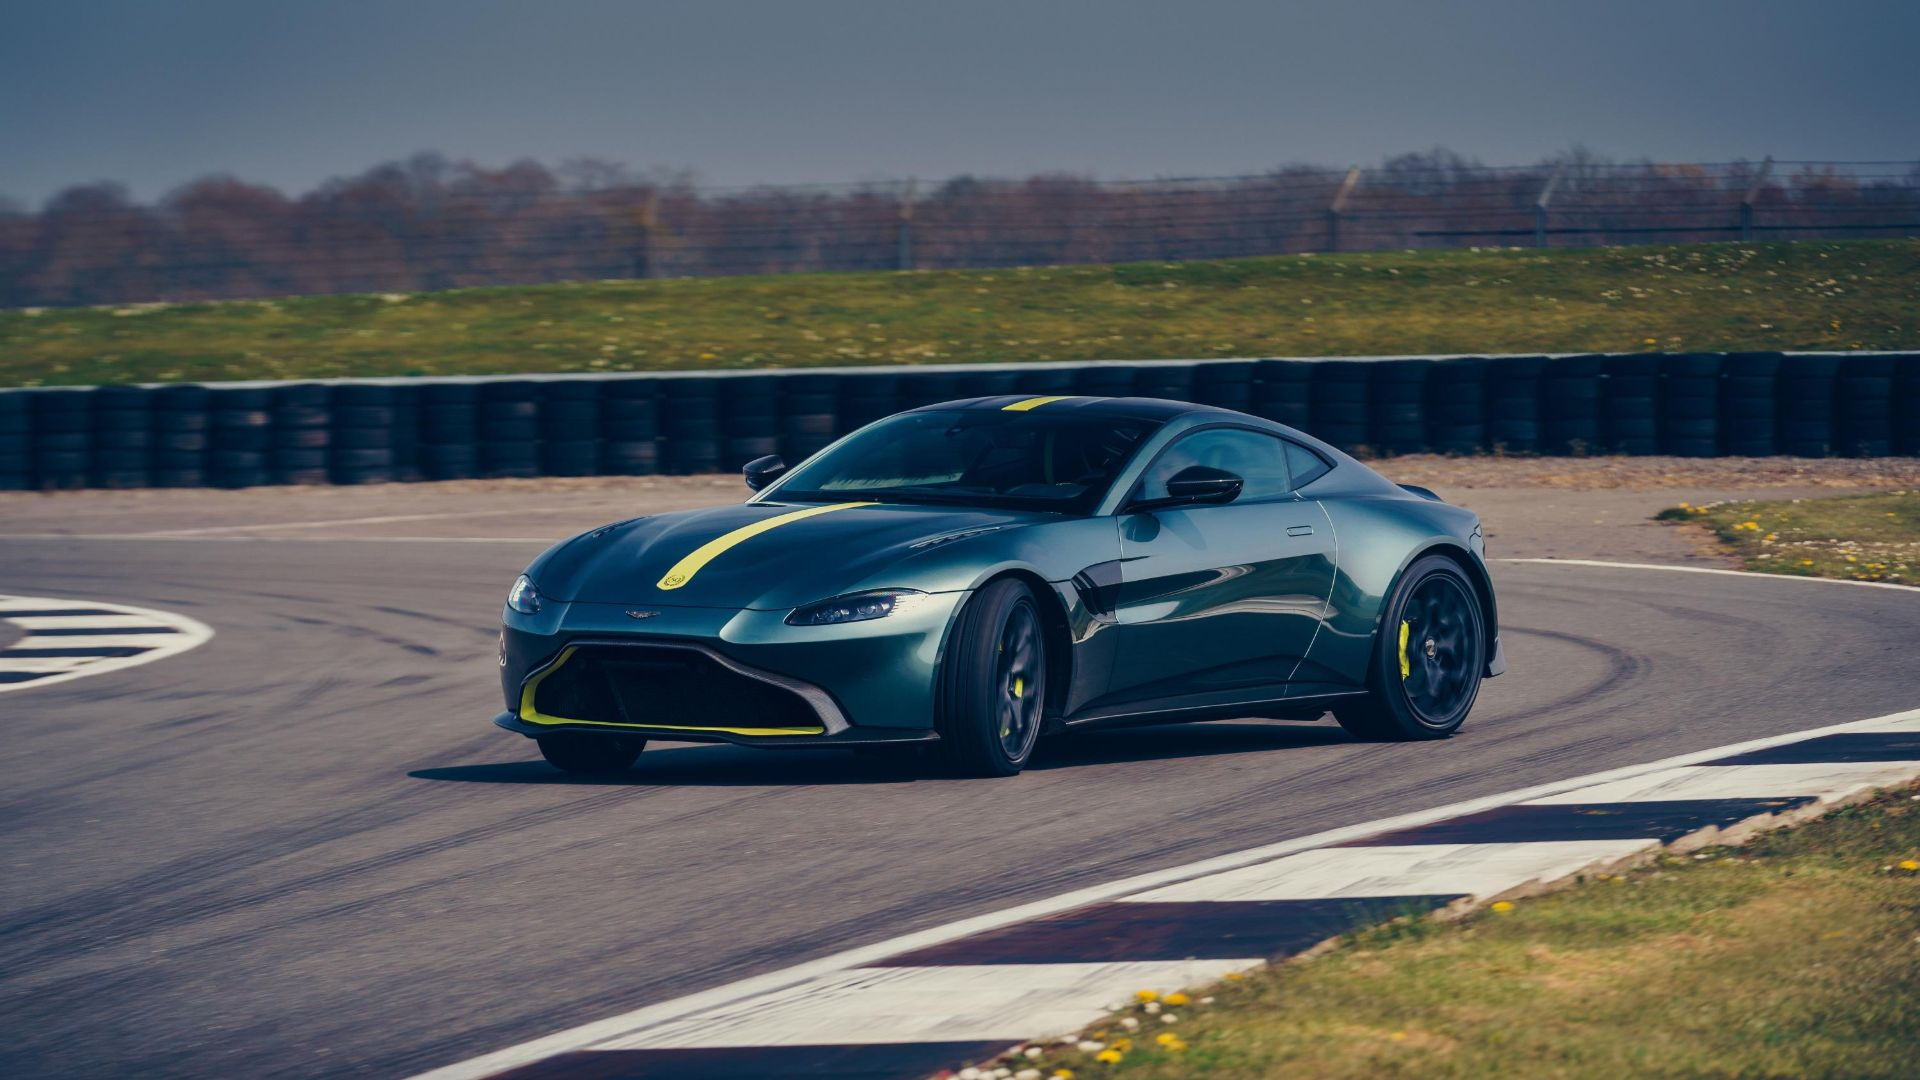 Vantage AMR and manual gearbox